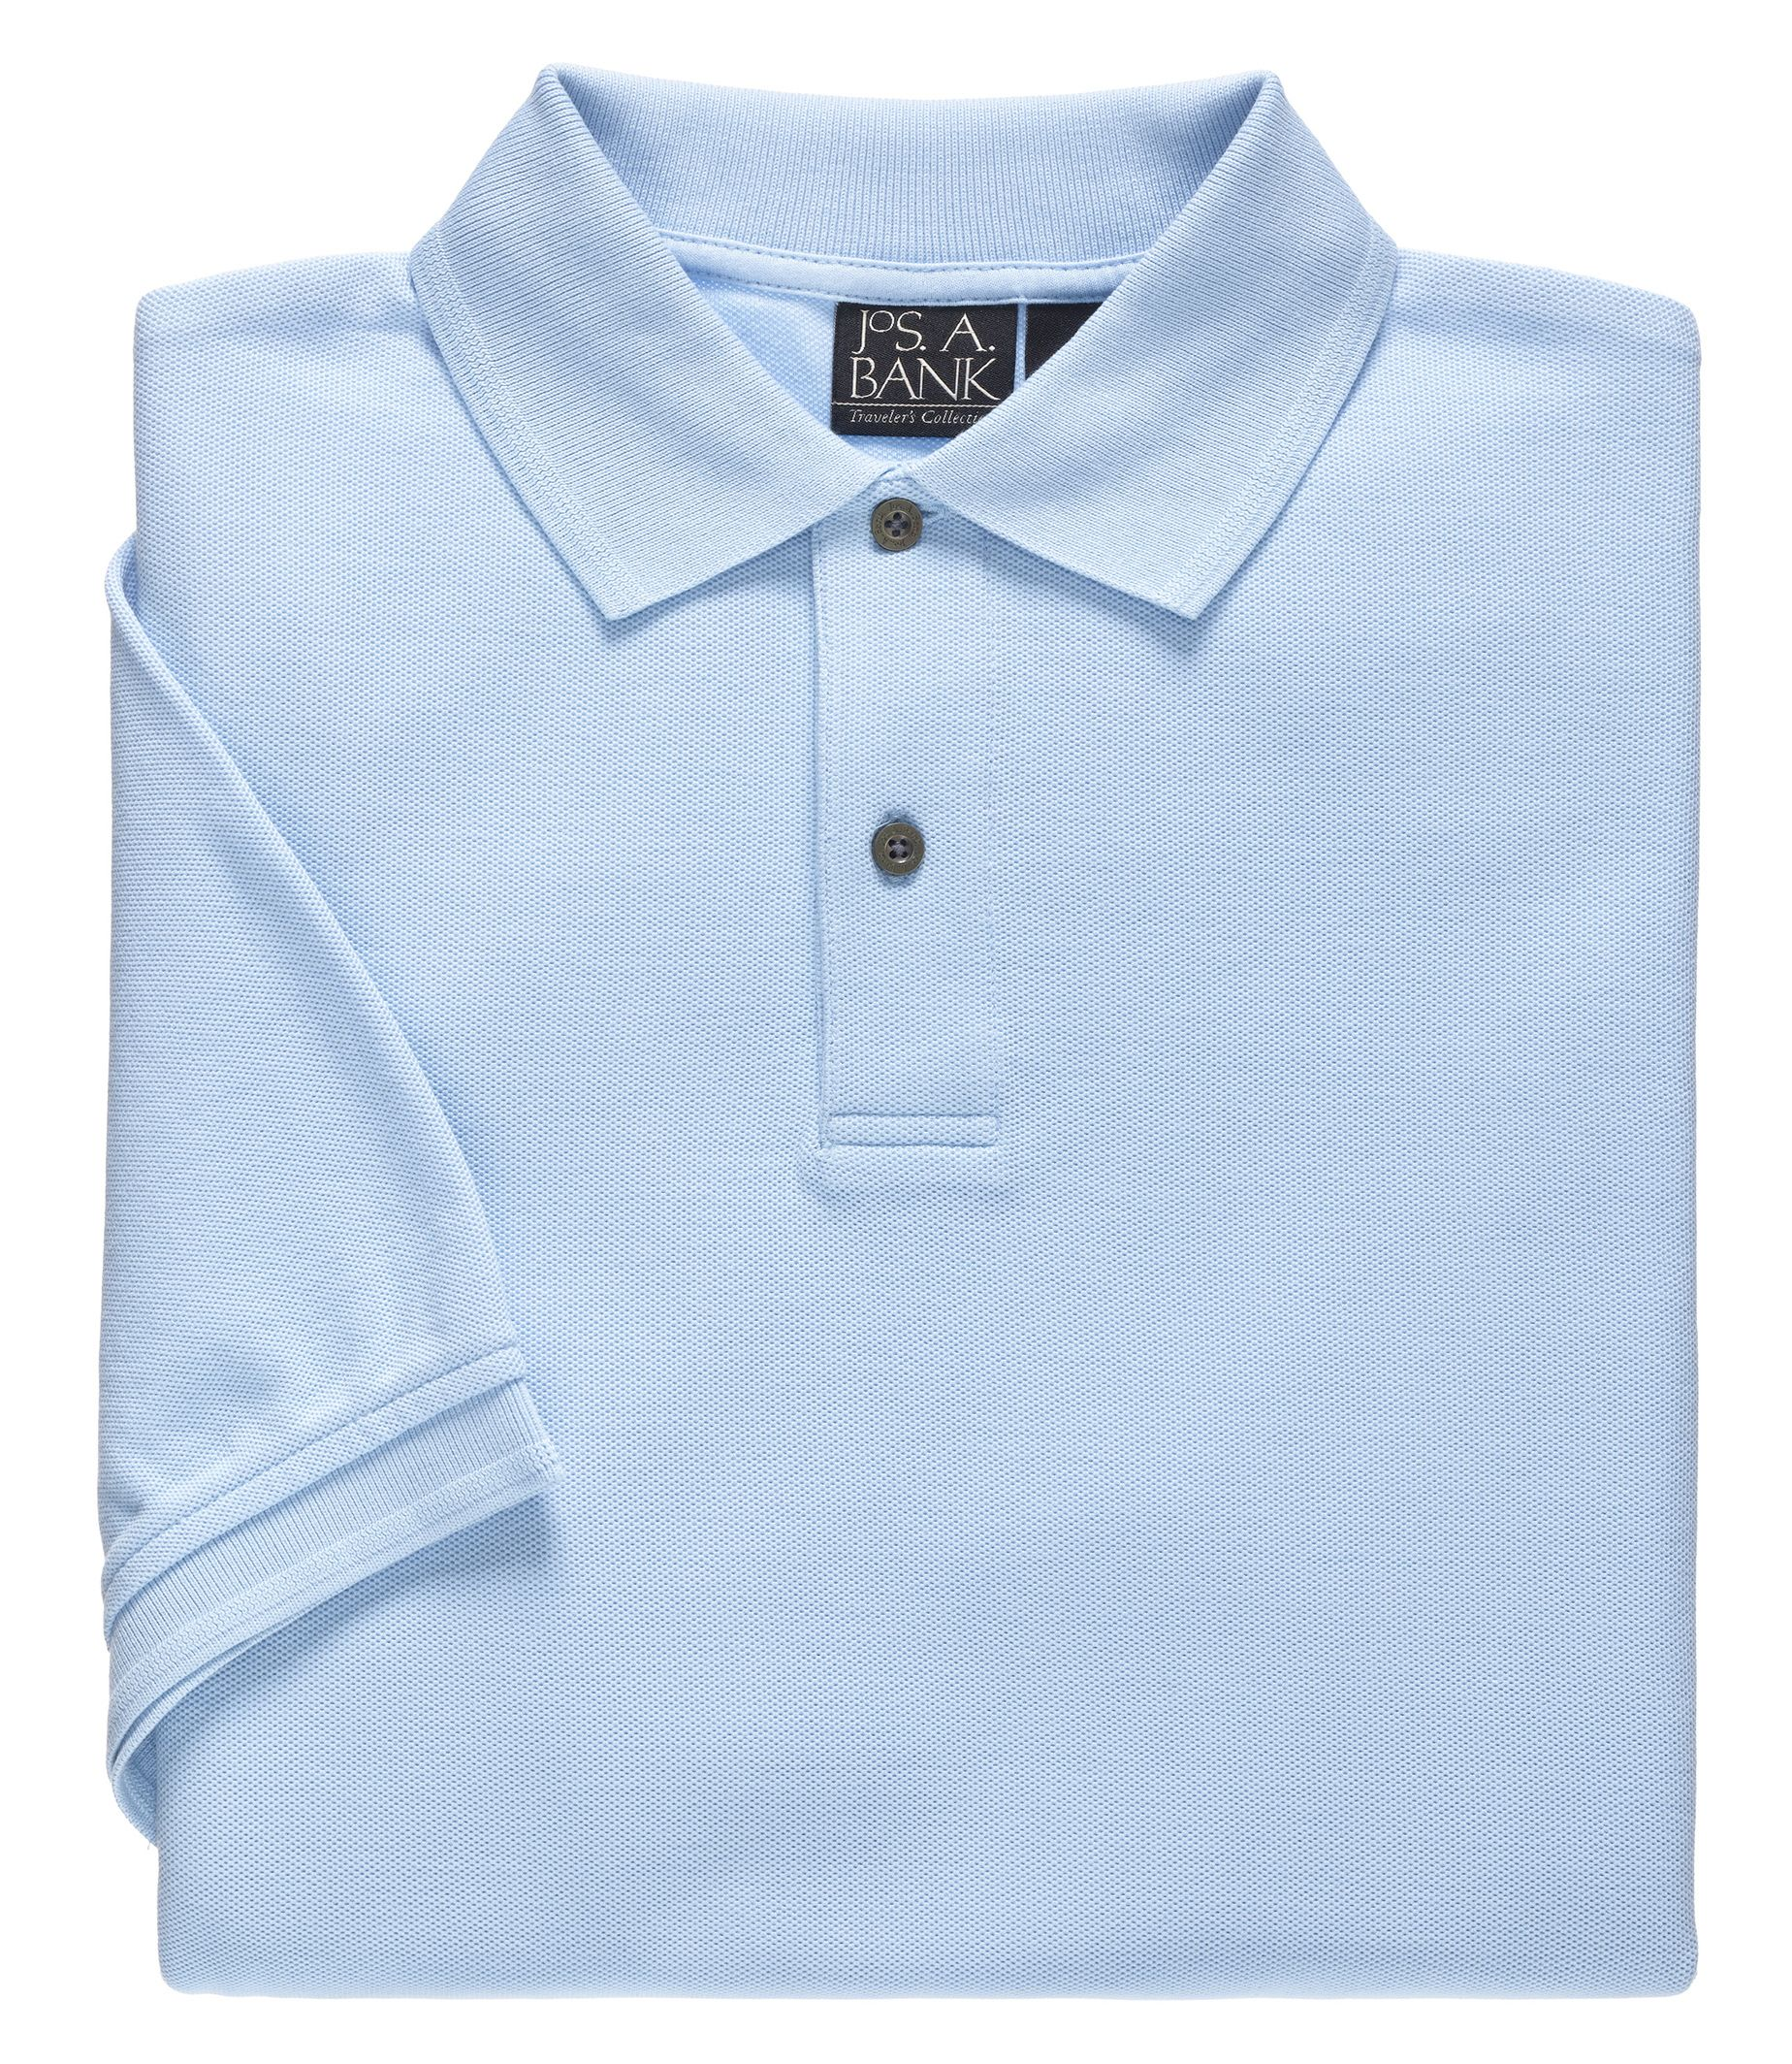 Wrinkle Free Dress Shirts Stay polished and professional effortlessly with wrinkle free dress shirts. Dress shirts in wrinkle free fabrics like sateen eliminate the need for ironing or pressing, so they're a great choice for men with busy schedules.